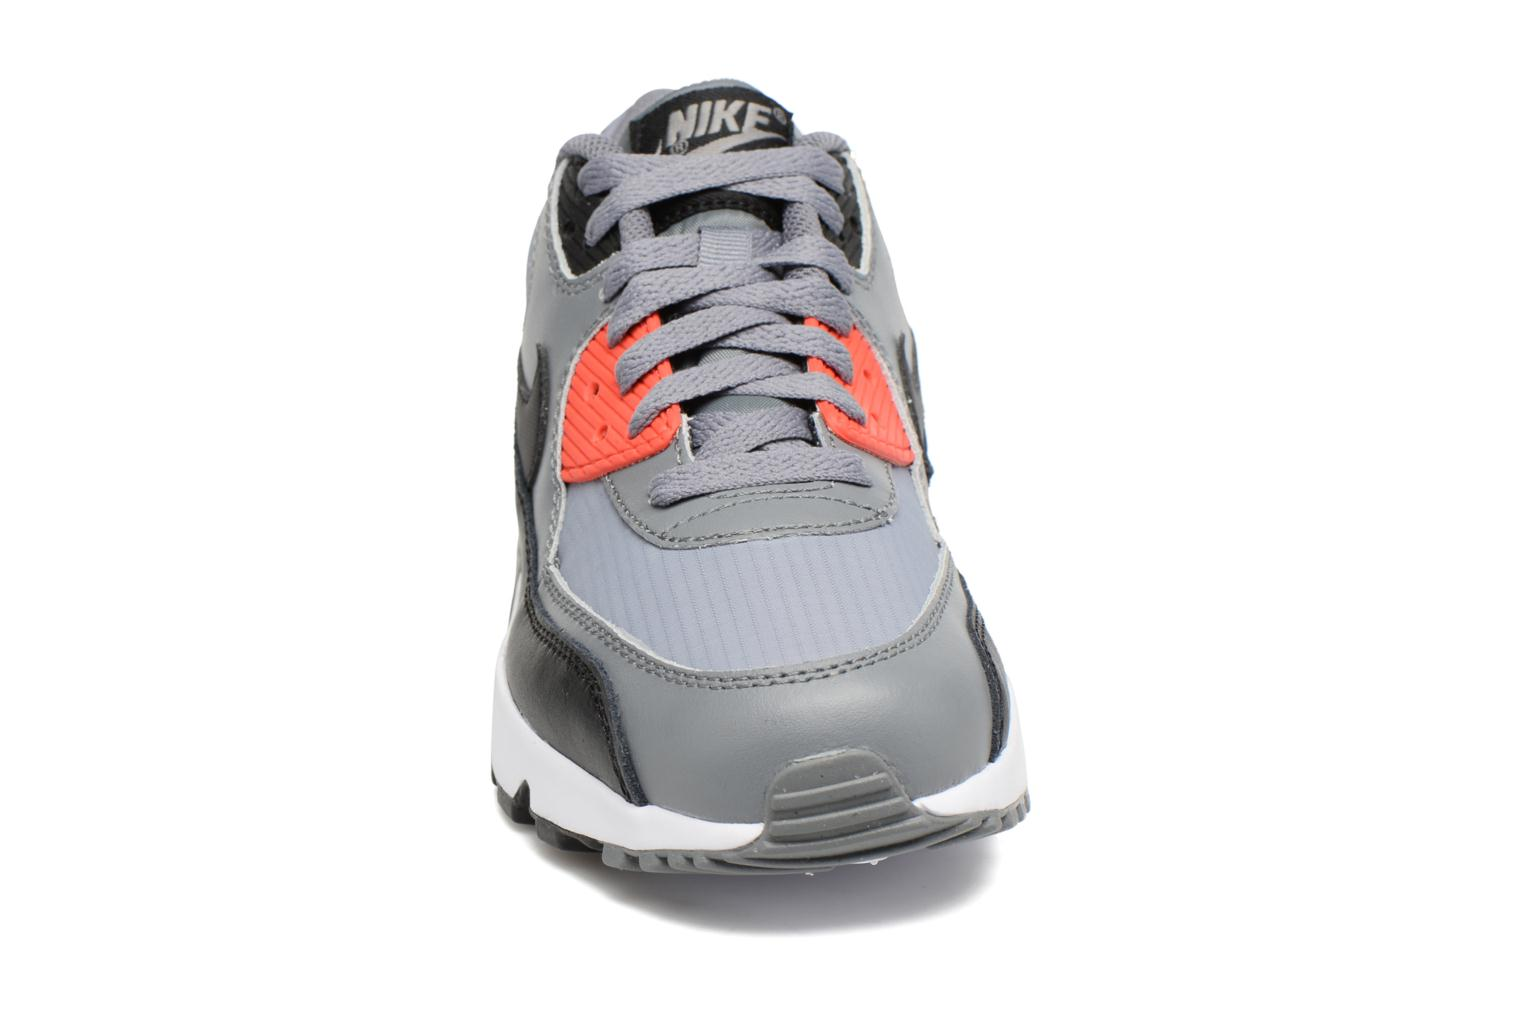 NIKE AIR MAX 90 MESH (GS) Cool Grey/Black-Max Orange-White